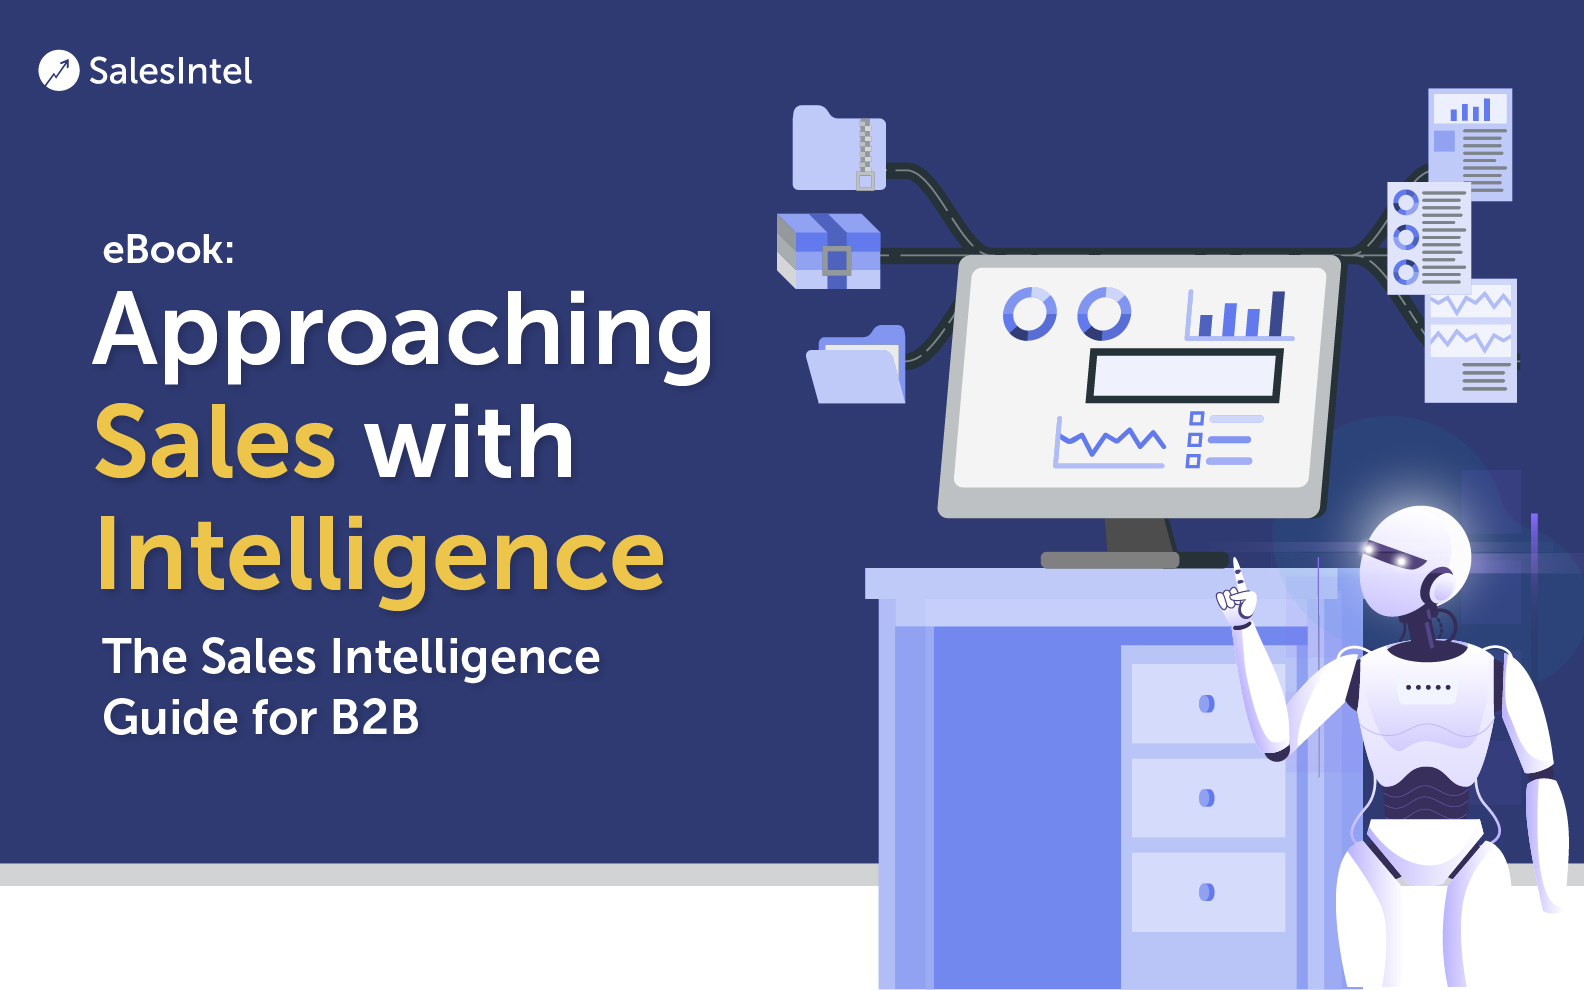 Approaching Sales with Intelligence